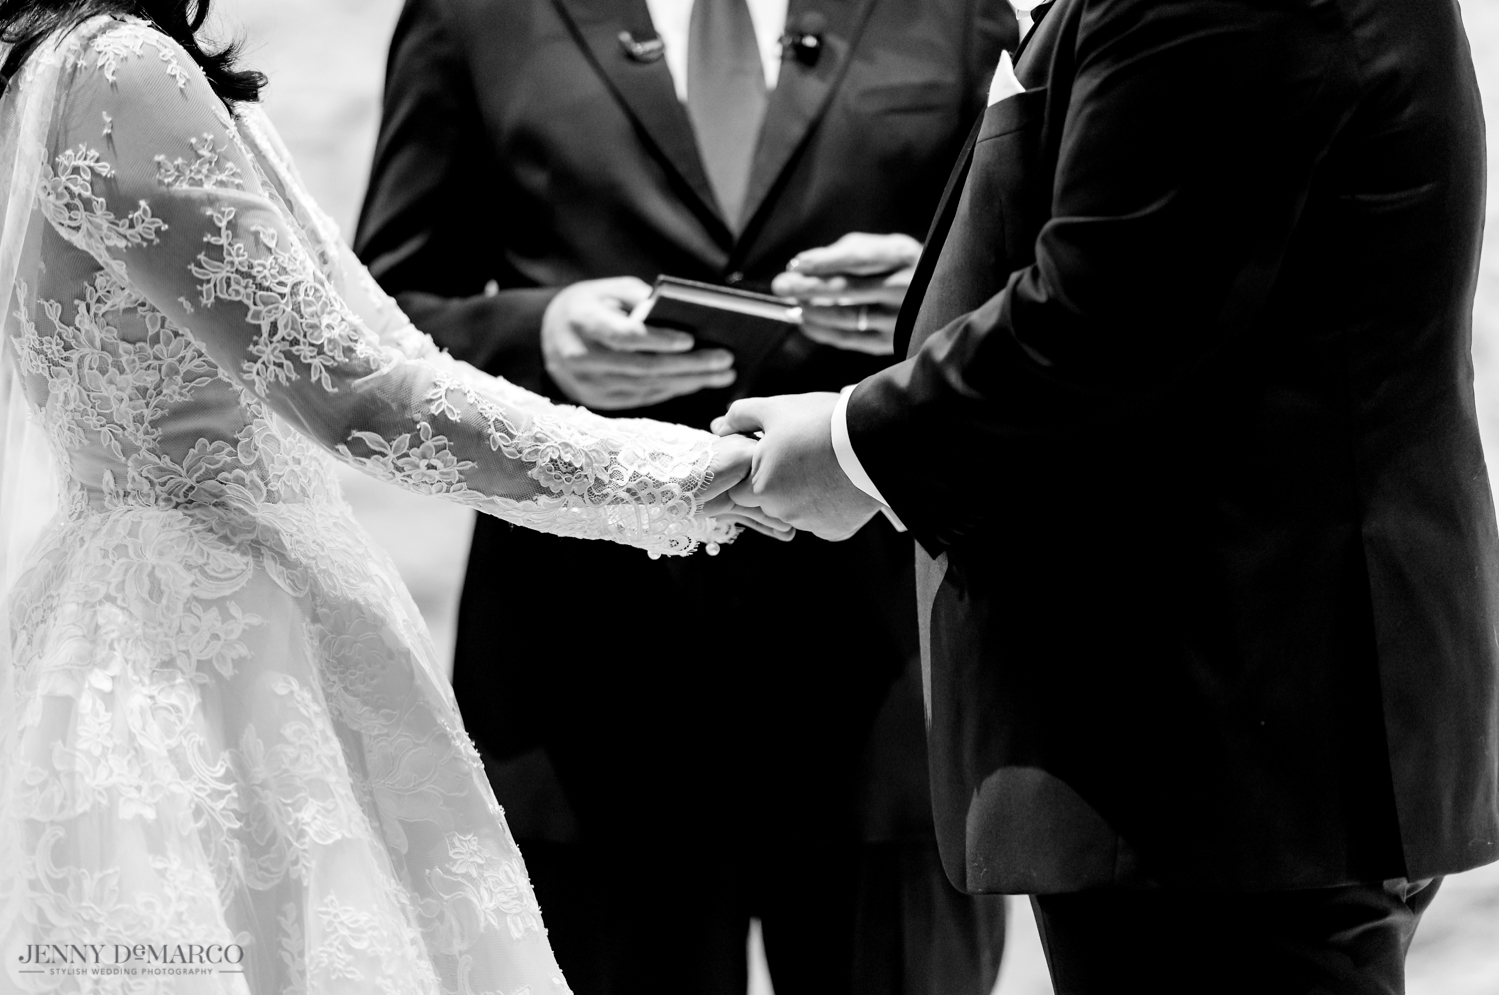 the bride and groom holding hands at the alter